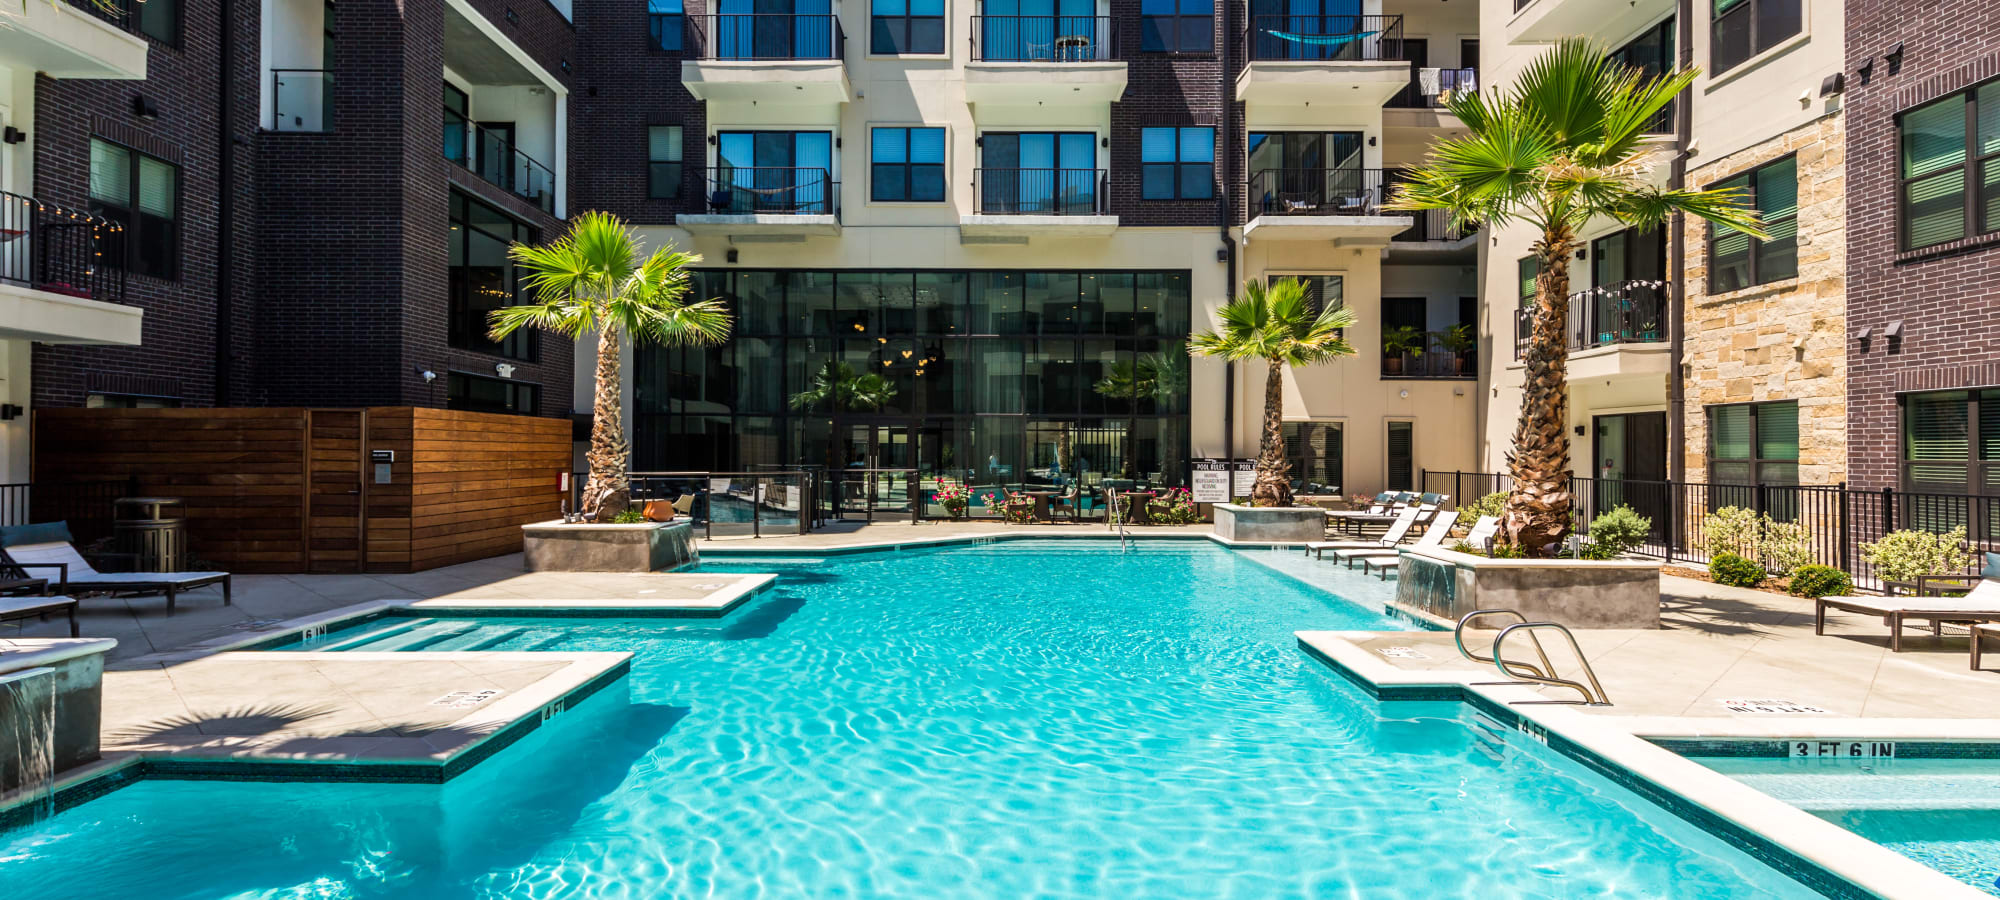 Amenities at Marq 31 in Houston, Texas